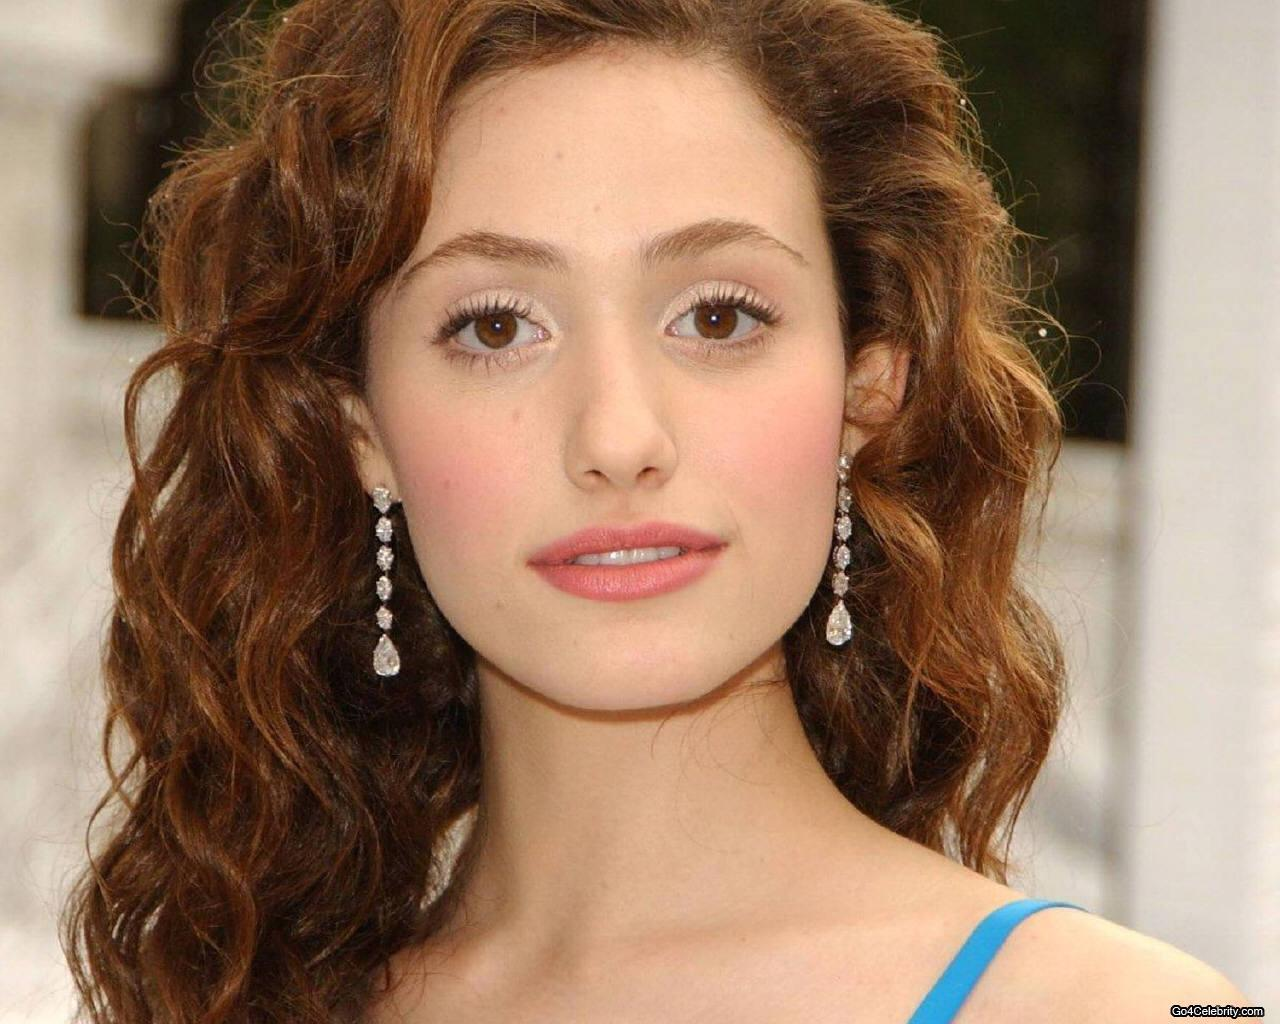 Emmy wallpaper - emmy-rossum Wallpaper